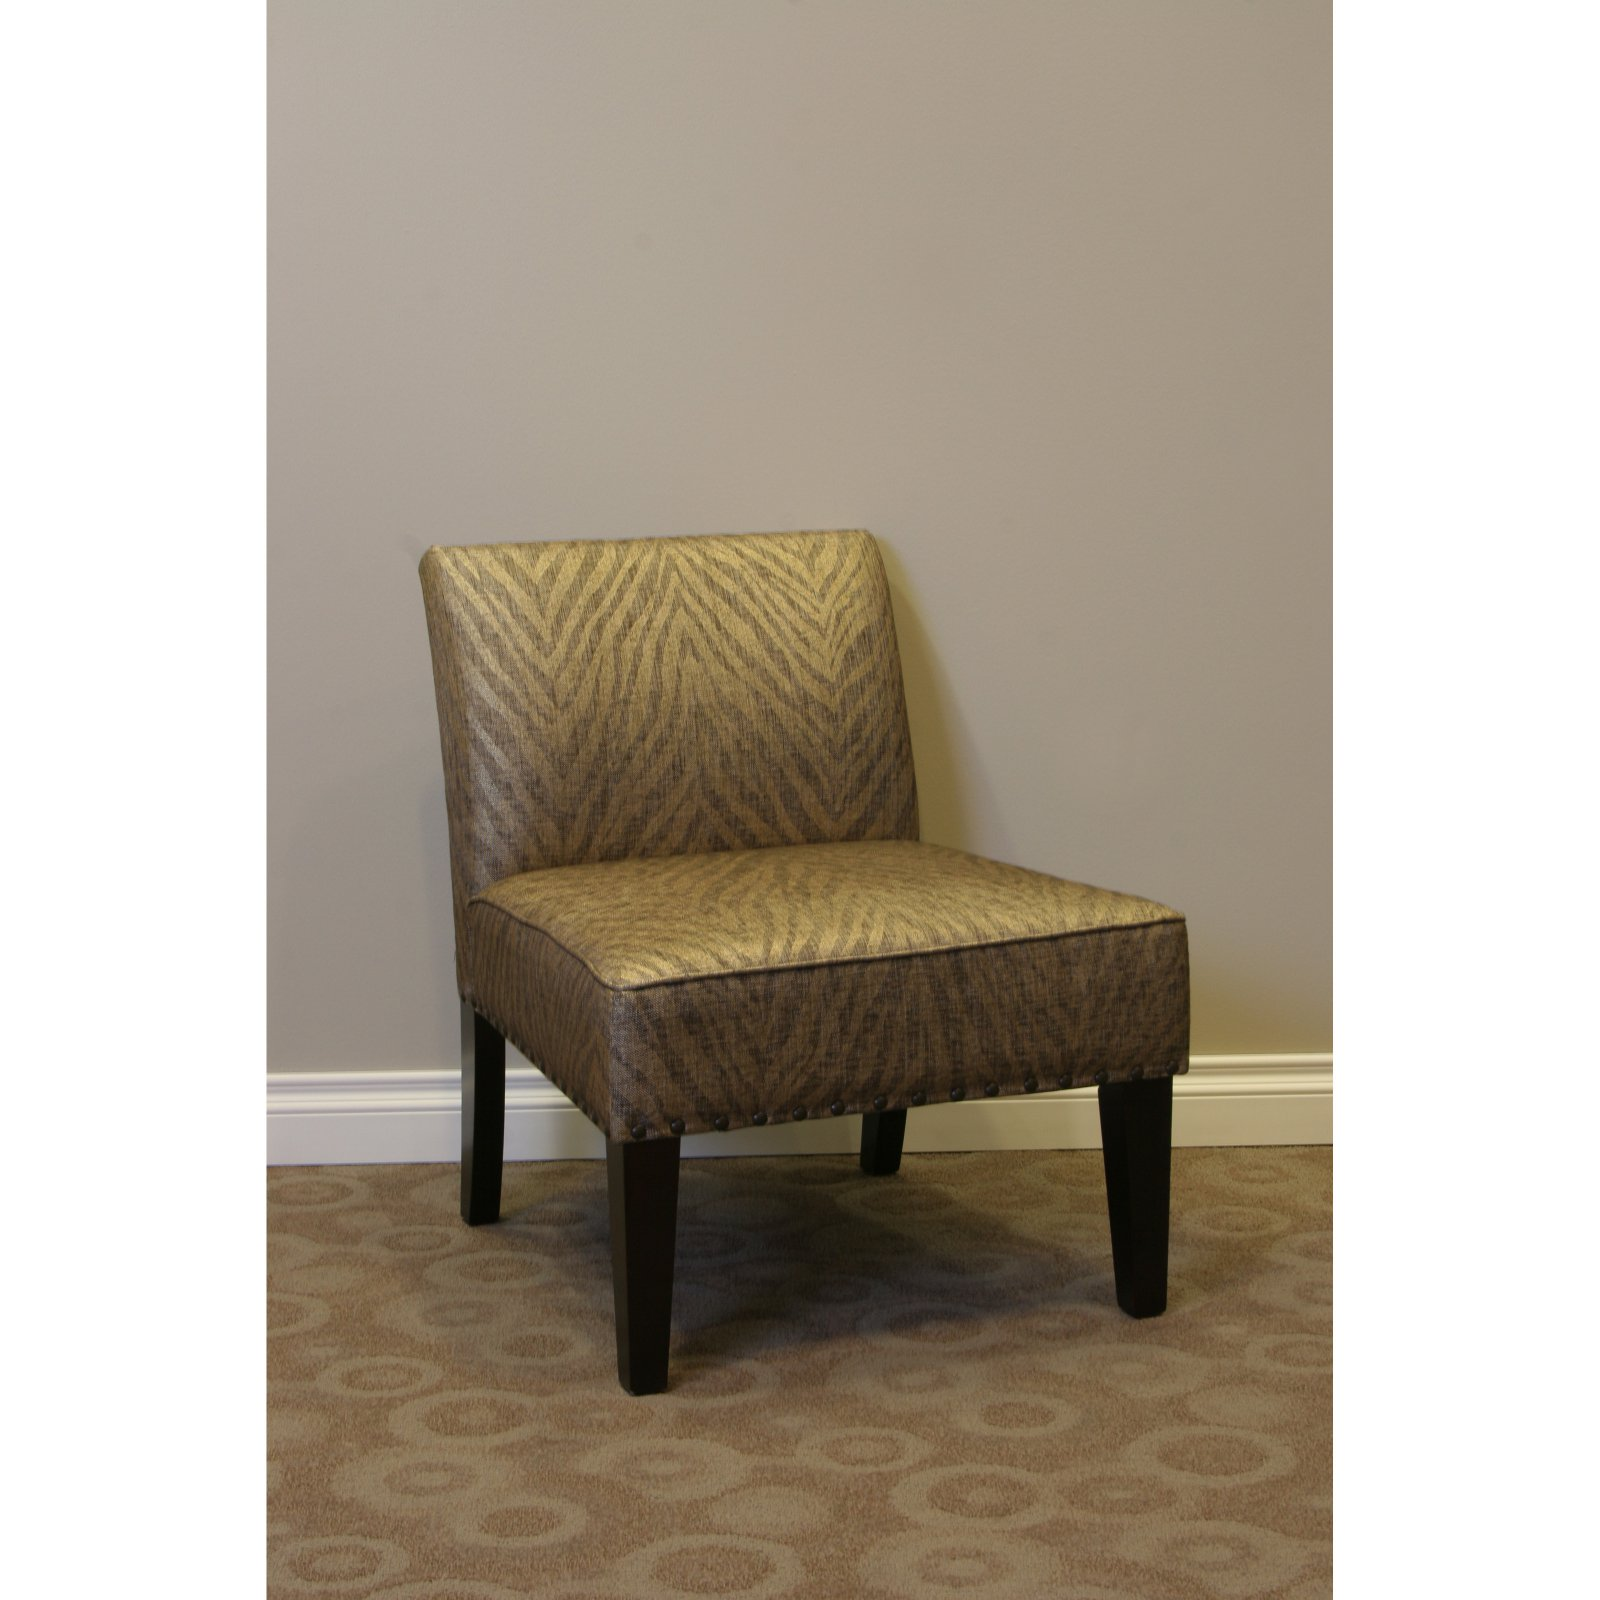 4D Concepts Belinda Accent Dining Chair